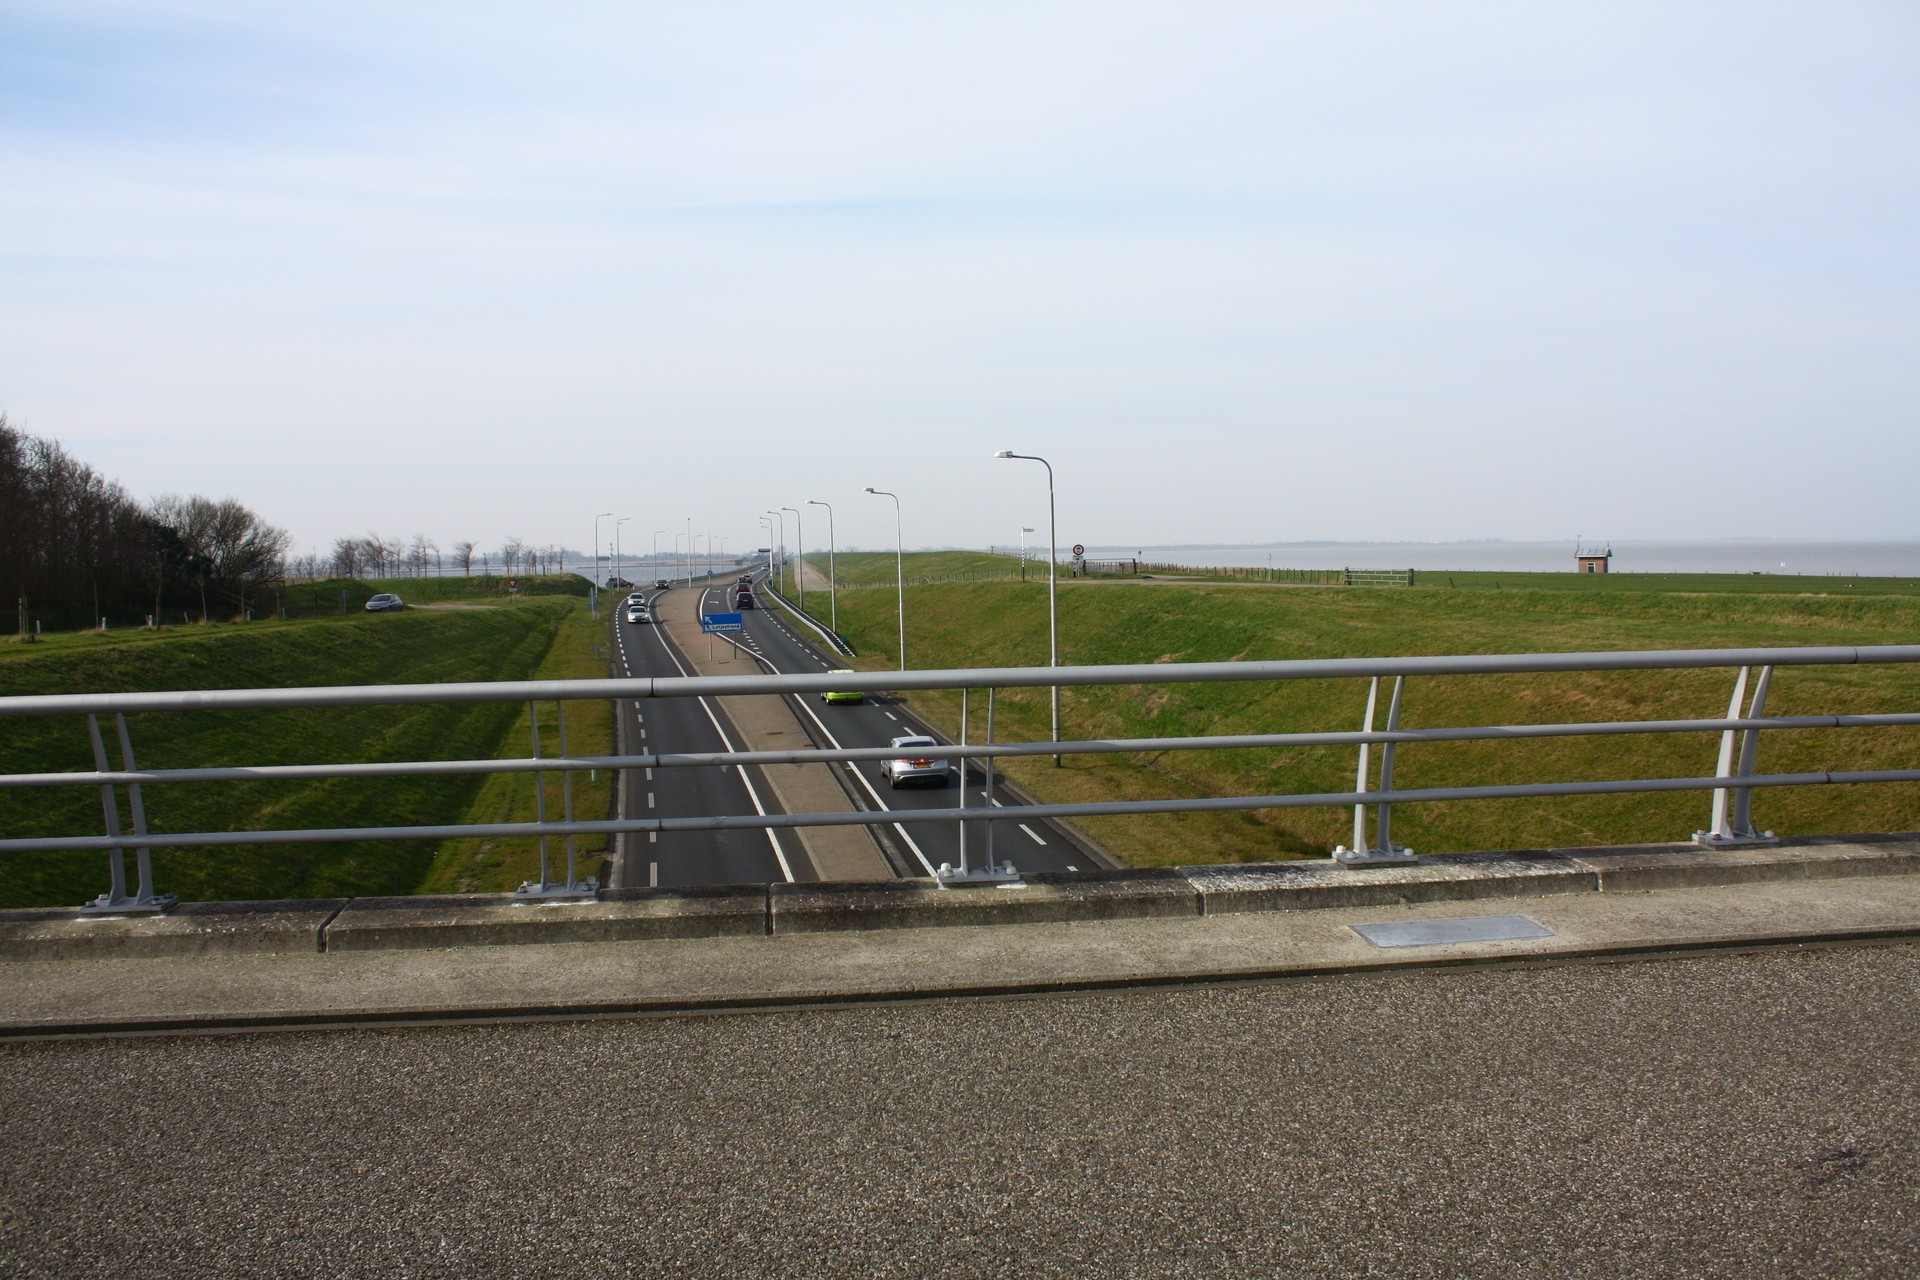 Looking westwards on Wieringen towards the Amsteldiepdijk